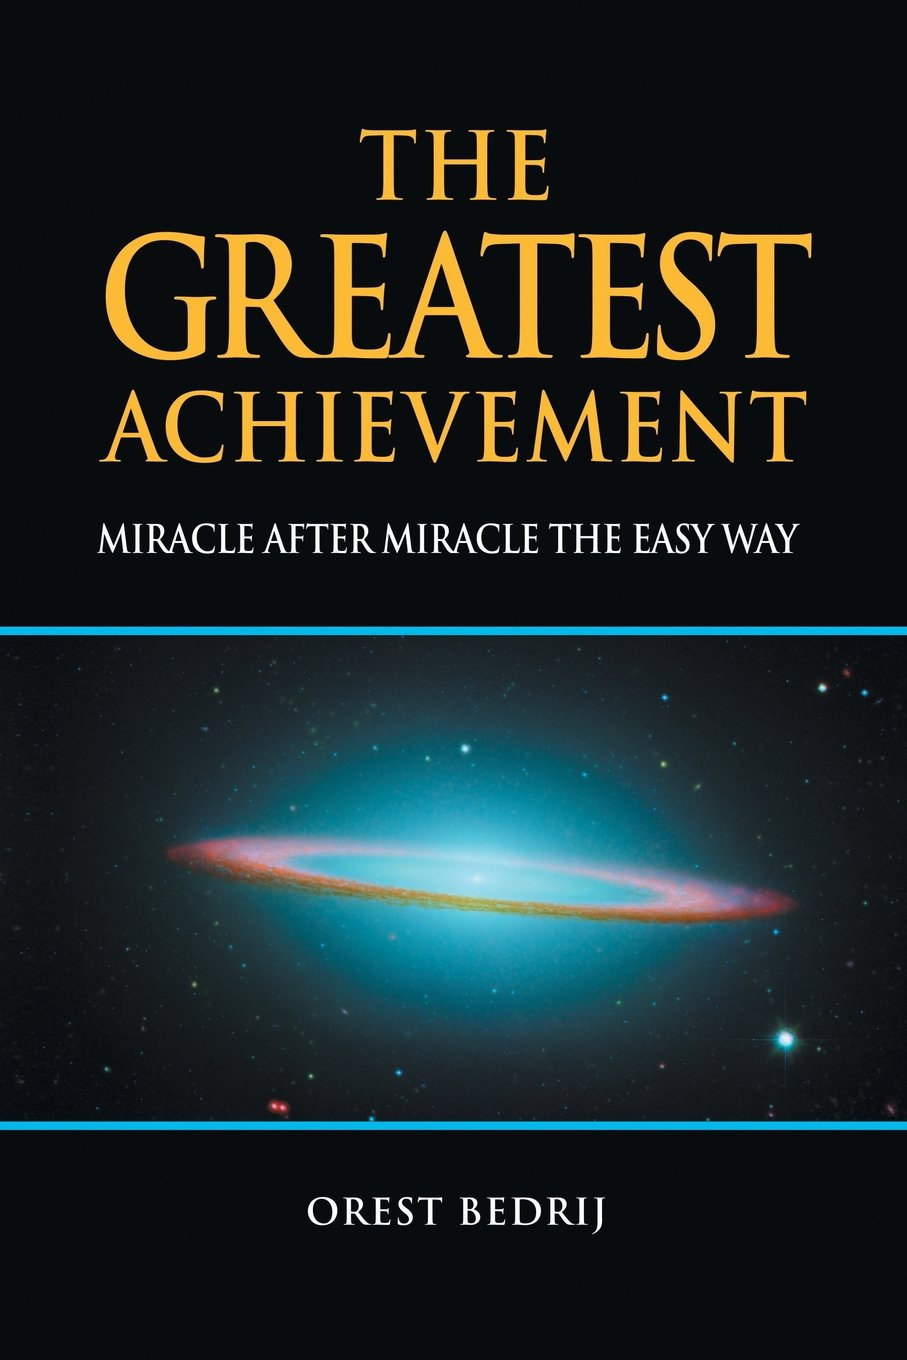 the greatest achievement miracle after miracle the easy way the greatest achievement miracle after miracle the easy way orest bedrij 9781493107711 amazon com books